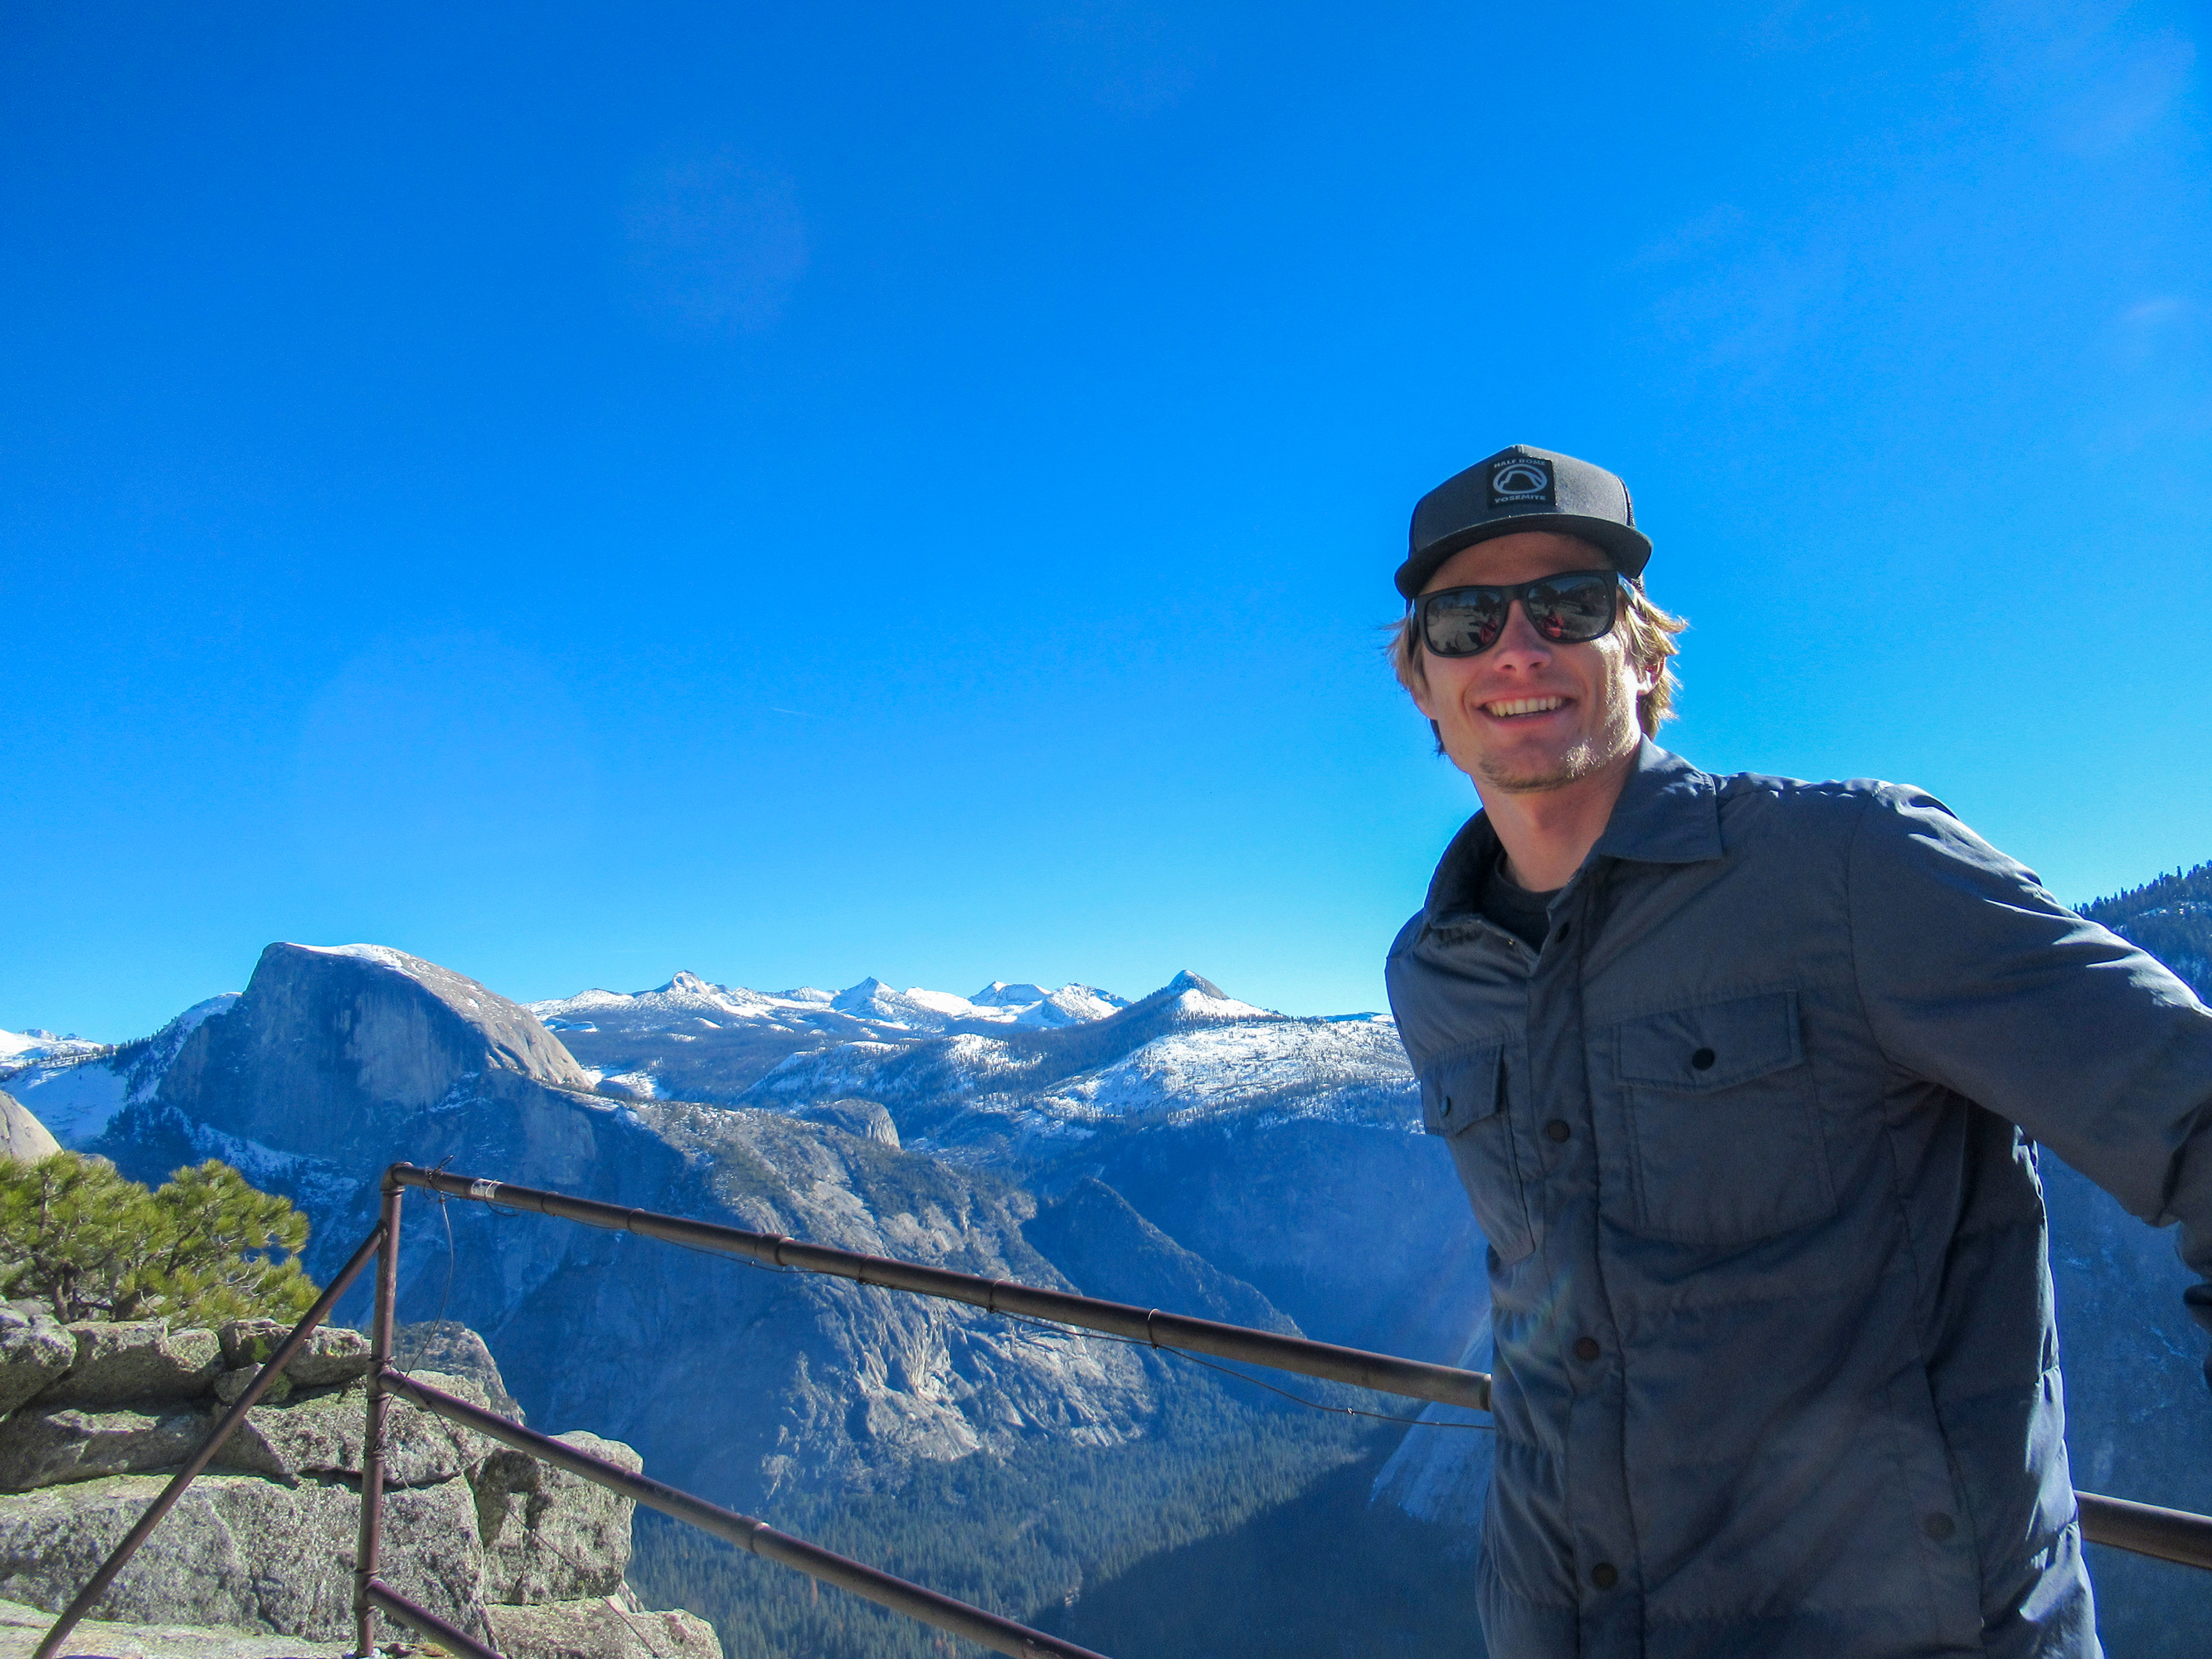 Evan Quarnstrom poses for a photo with Half Dome in the background.